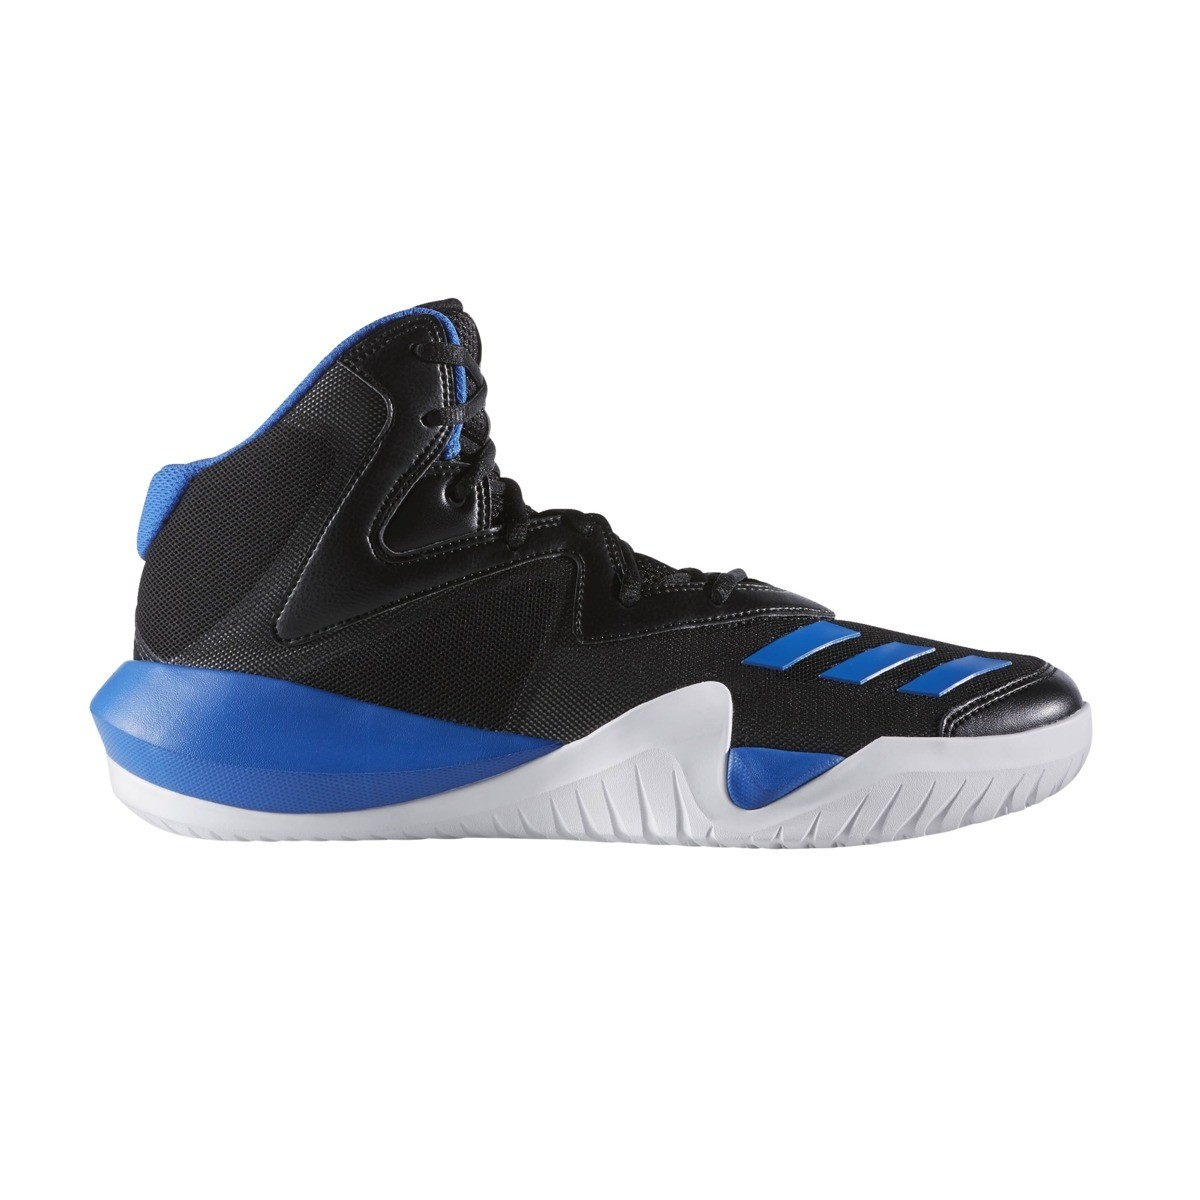 release date c8488 68c9a Buty Adidas Crazy Team 2017 - BB8253